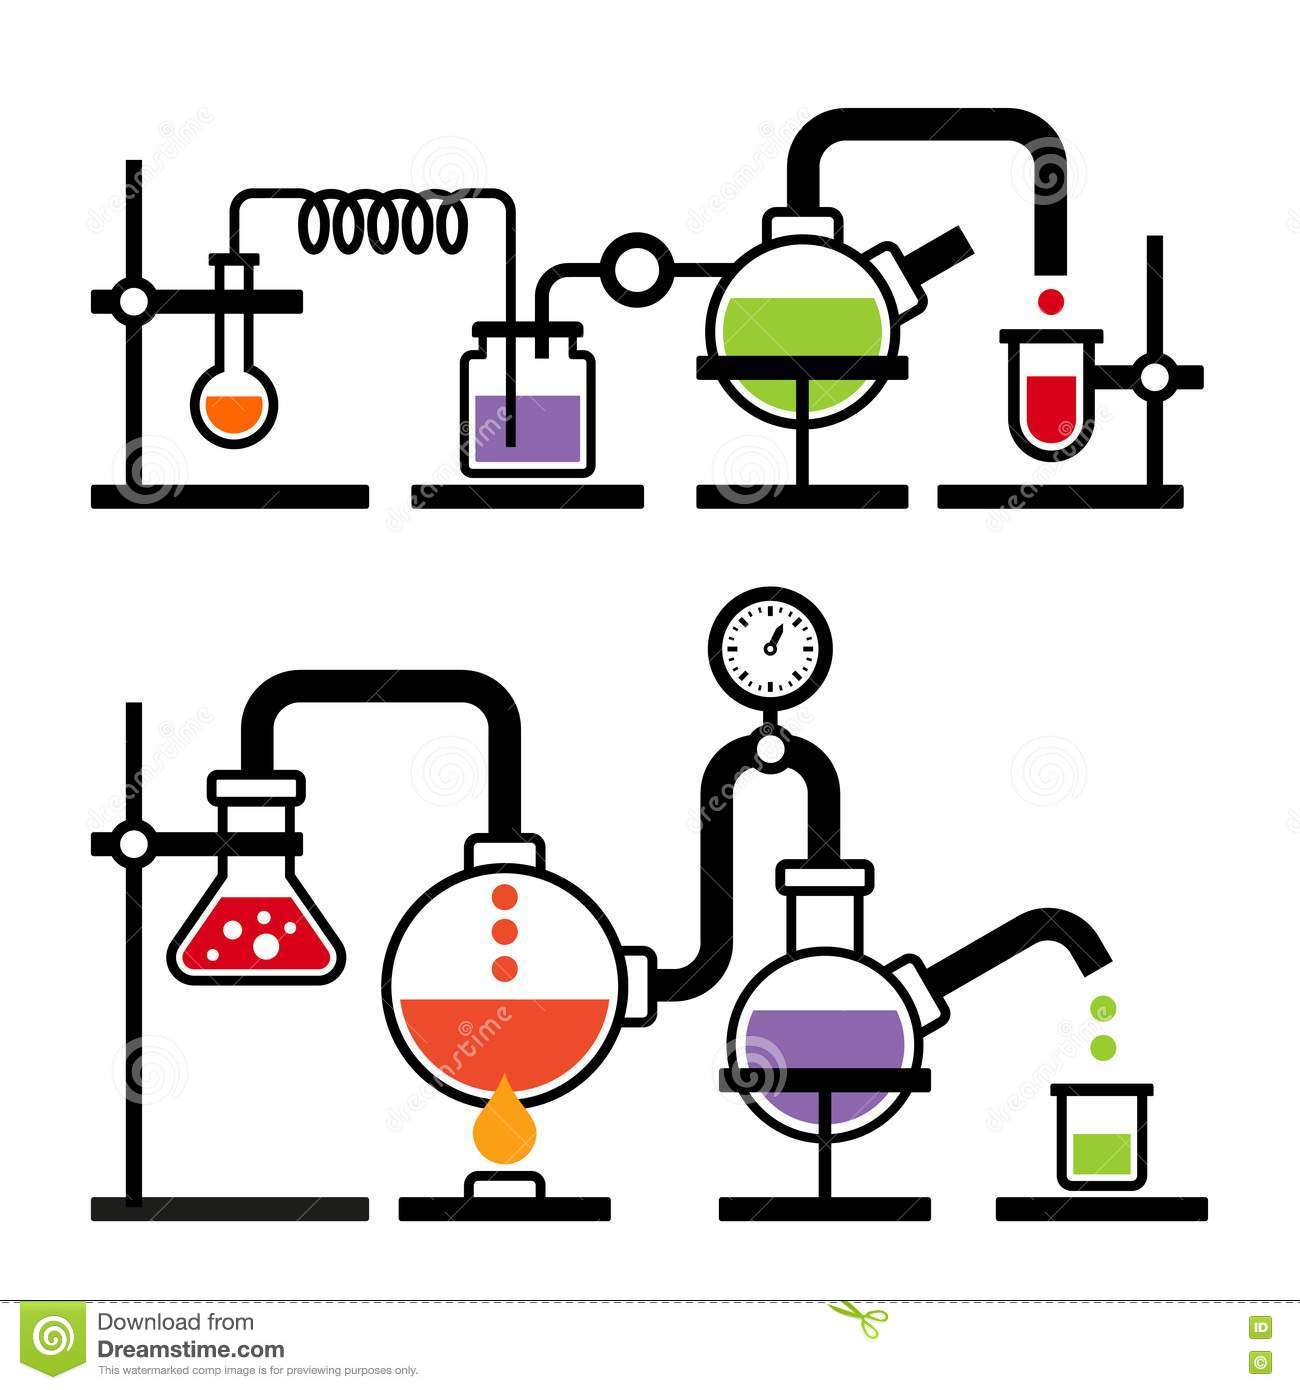 reaction lab The chemical change that occurs when vinegar (5% acetic acid) and baking soda  (sodium bicarbonate) are mixed together is an example of a gas forming.